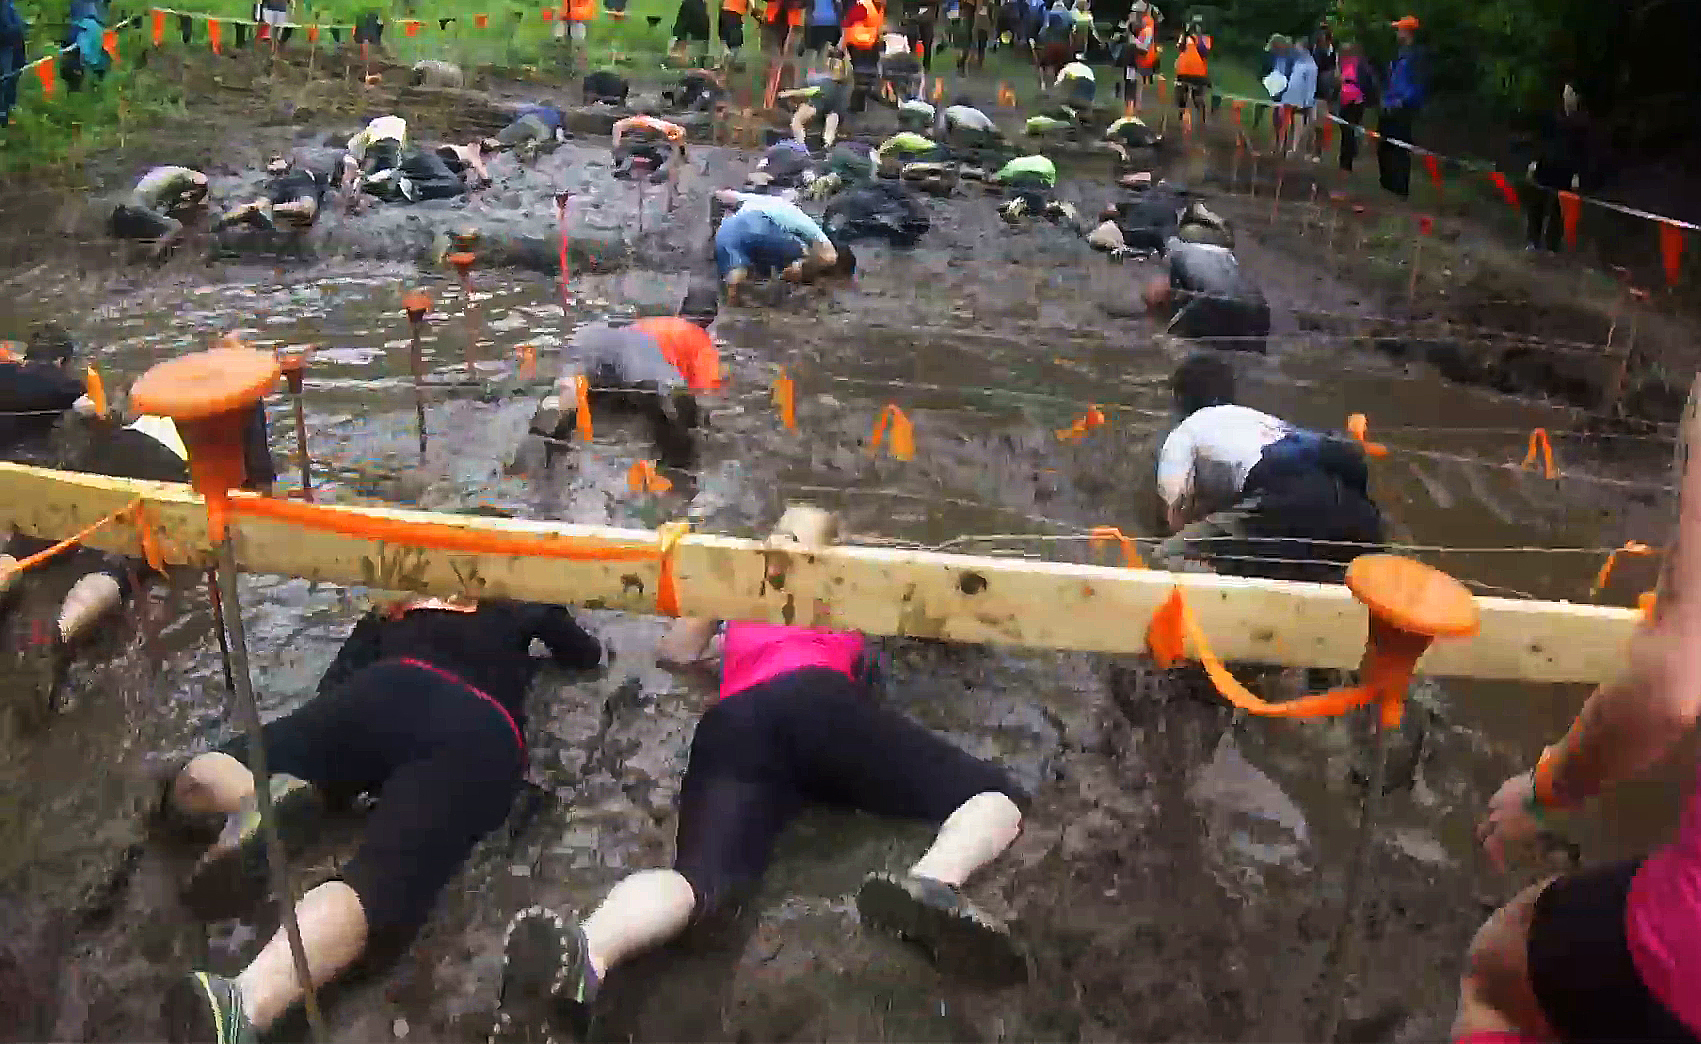 'Toughest event on the planet': Tough Mudder obstacle course draws more than 13,000 to Westbrook